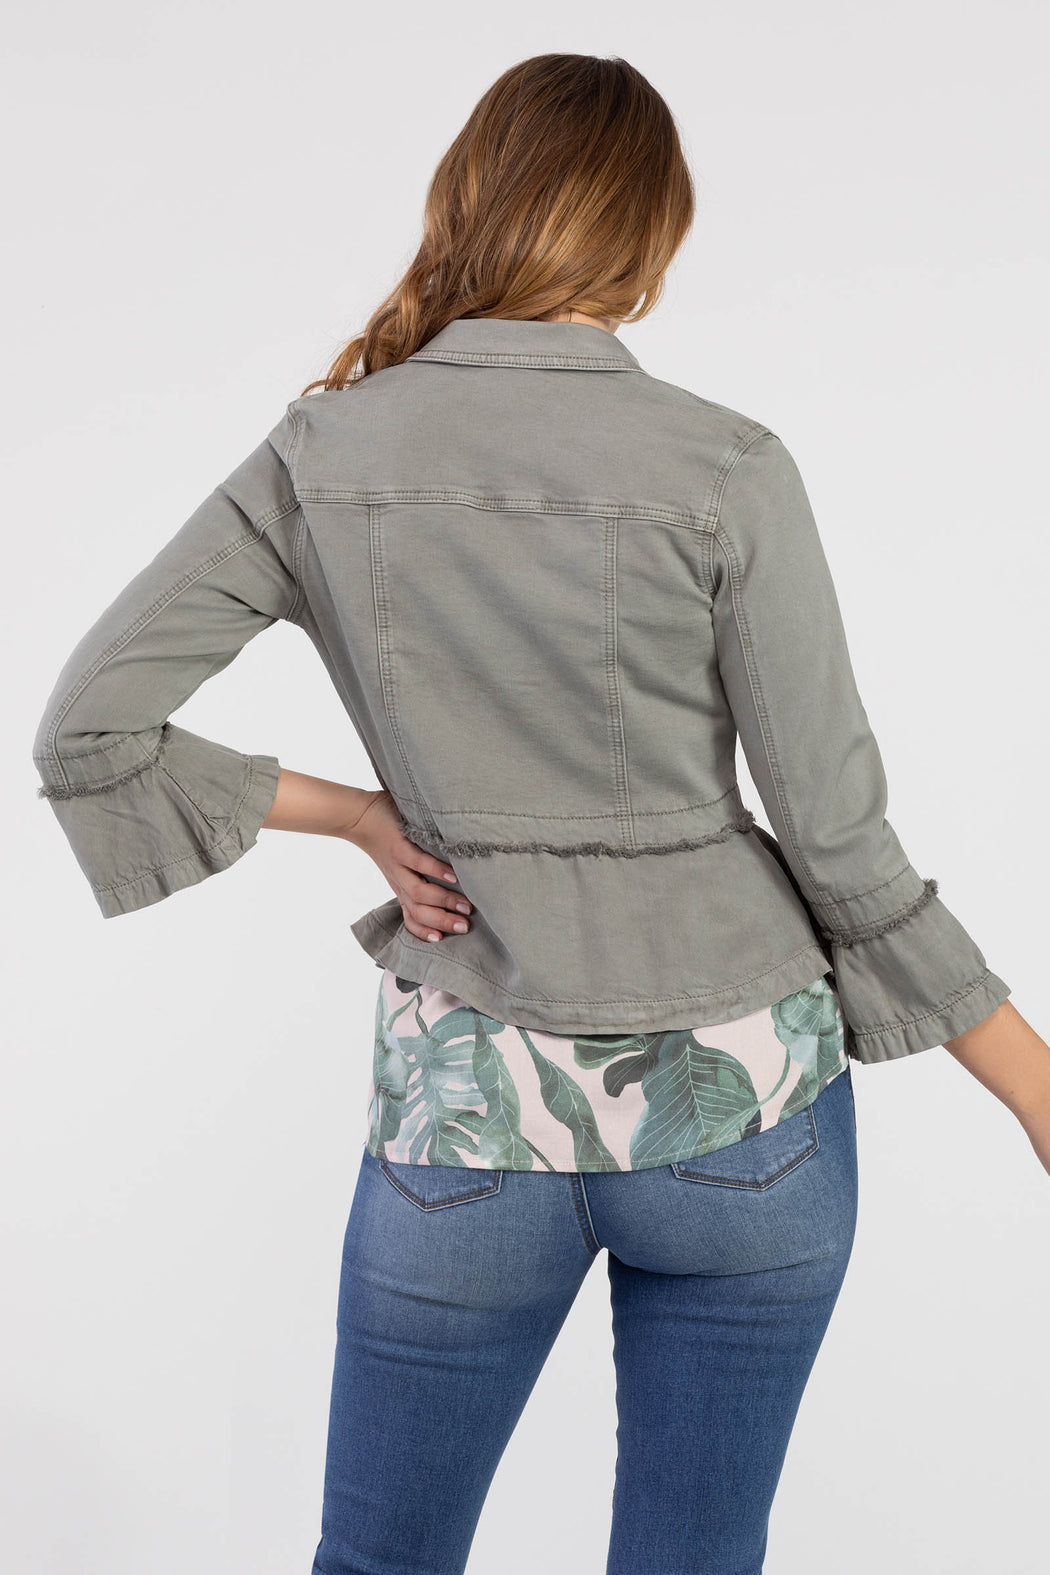 Think of this piece as the classic denim jacket's better half: same button front and classic collar but with a bell sleeve and a frayed detail at the waist and cuff. The body is made of stretch colored denim and the sleeve and bottom half are made using a soft tencel fabric. Wear it with blue jeans or patterned pants as the finishing touch on a fun casual outfit.